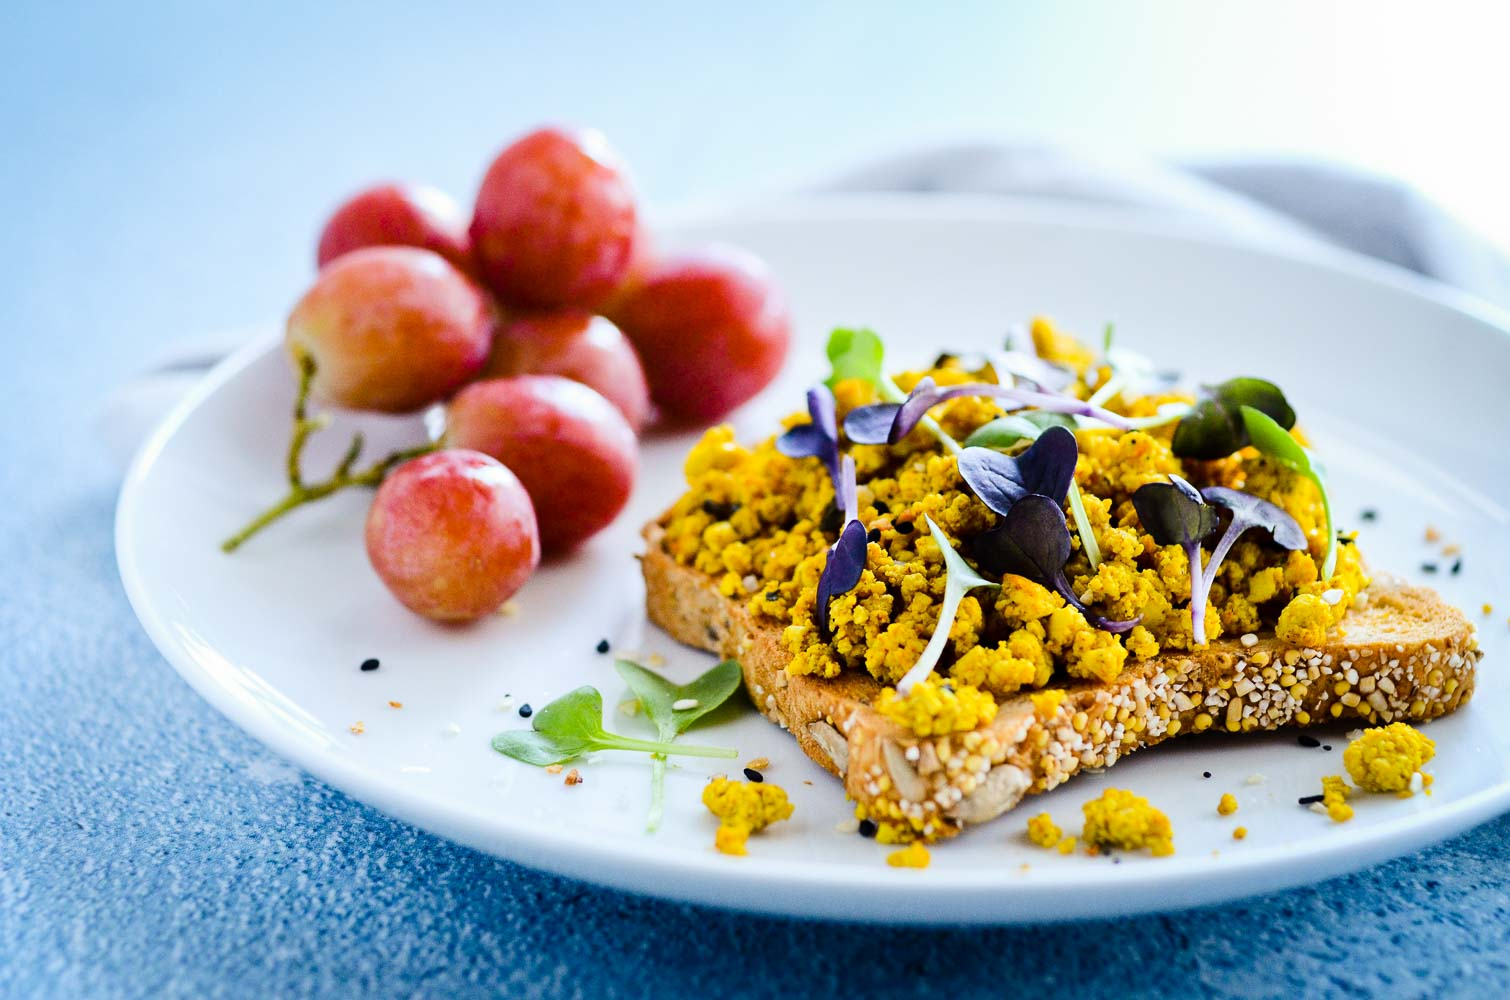 Perspective by Lyndsey Hafer-Williams + Scrambled Tofu on